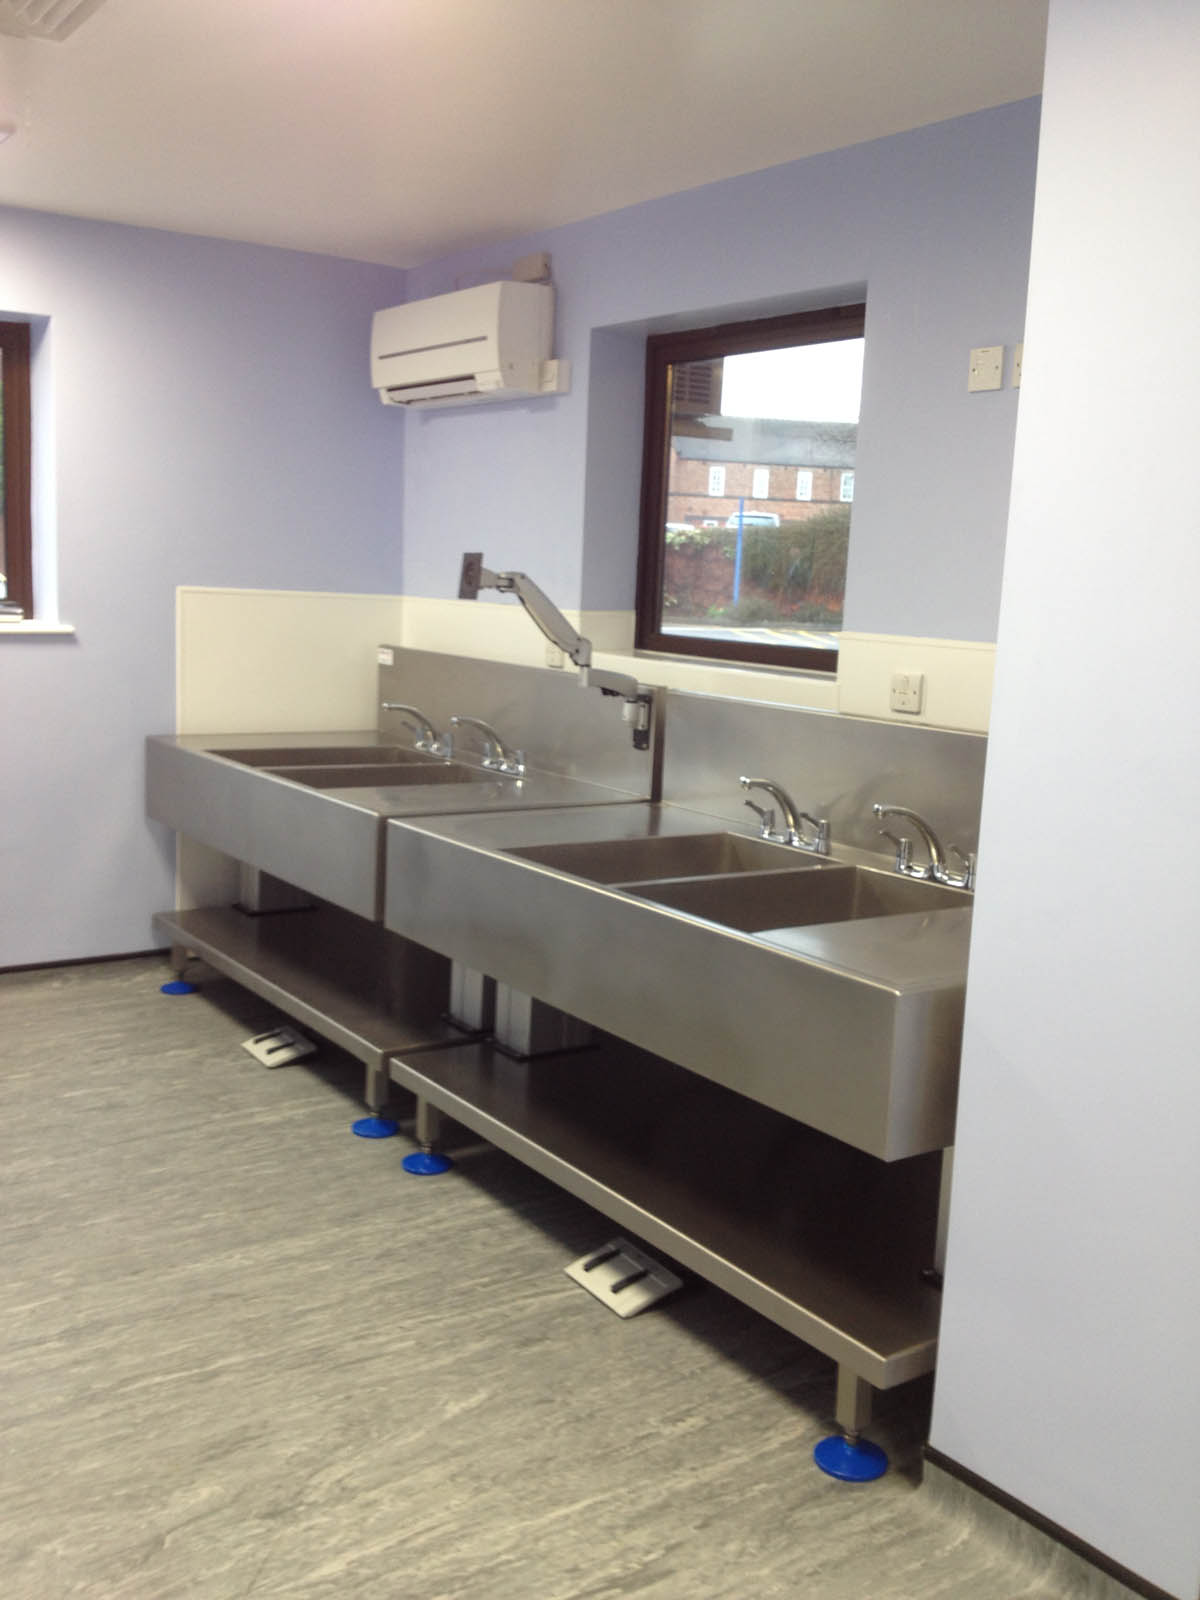 Endoscopy Room Design: Manual Decontamination Sinks For Endoscopy